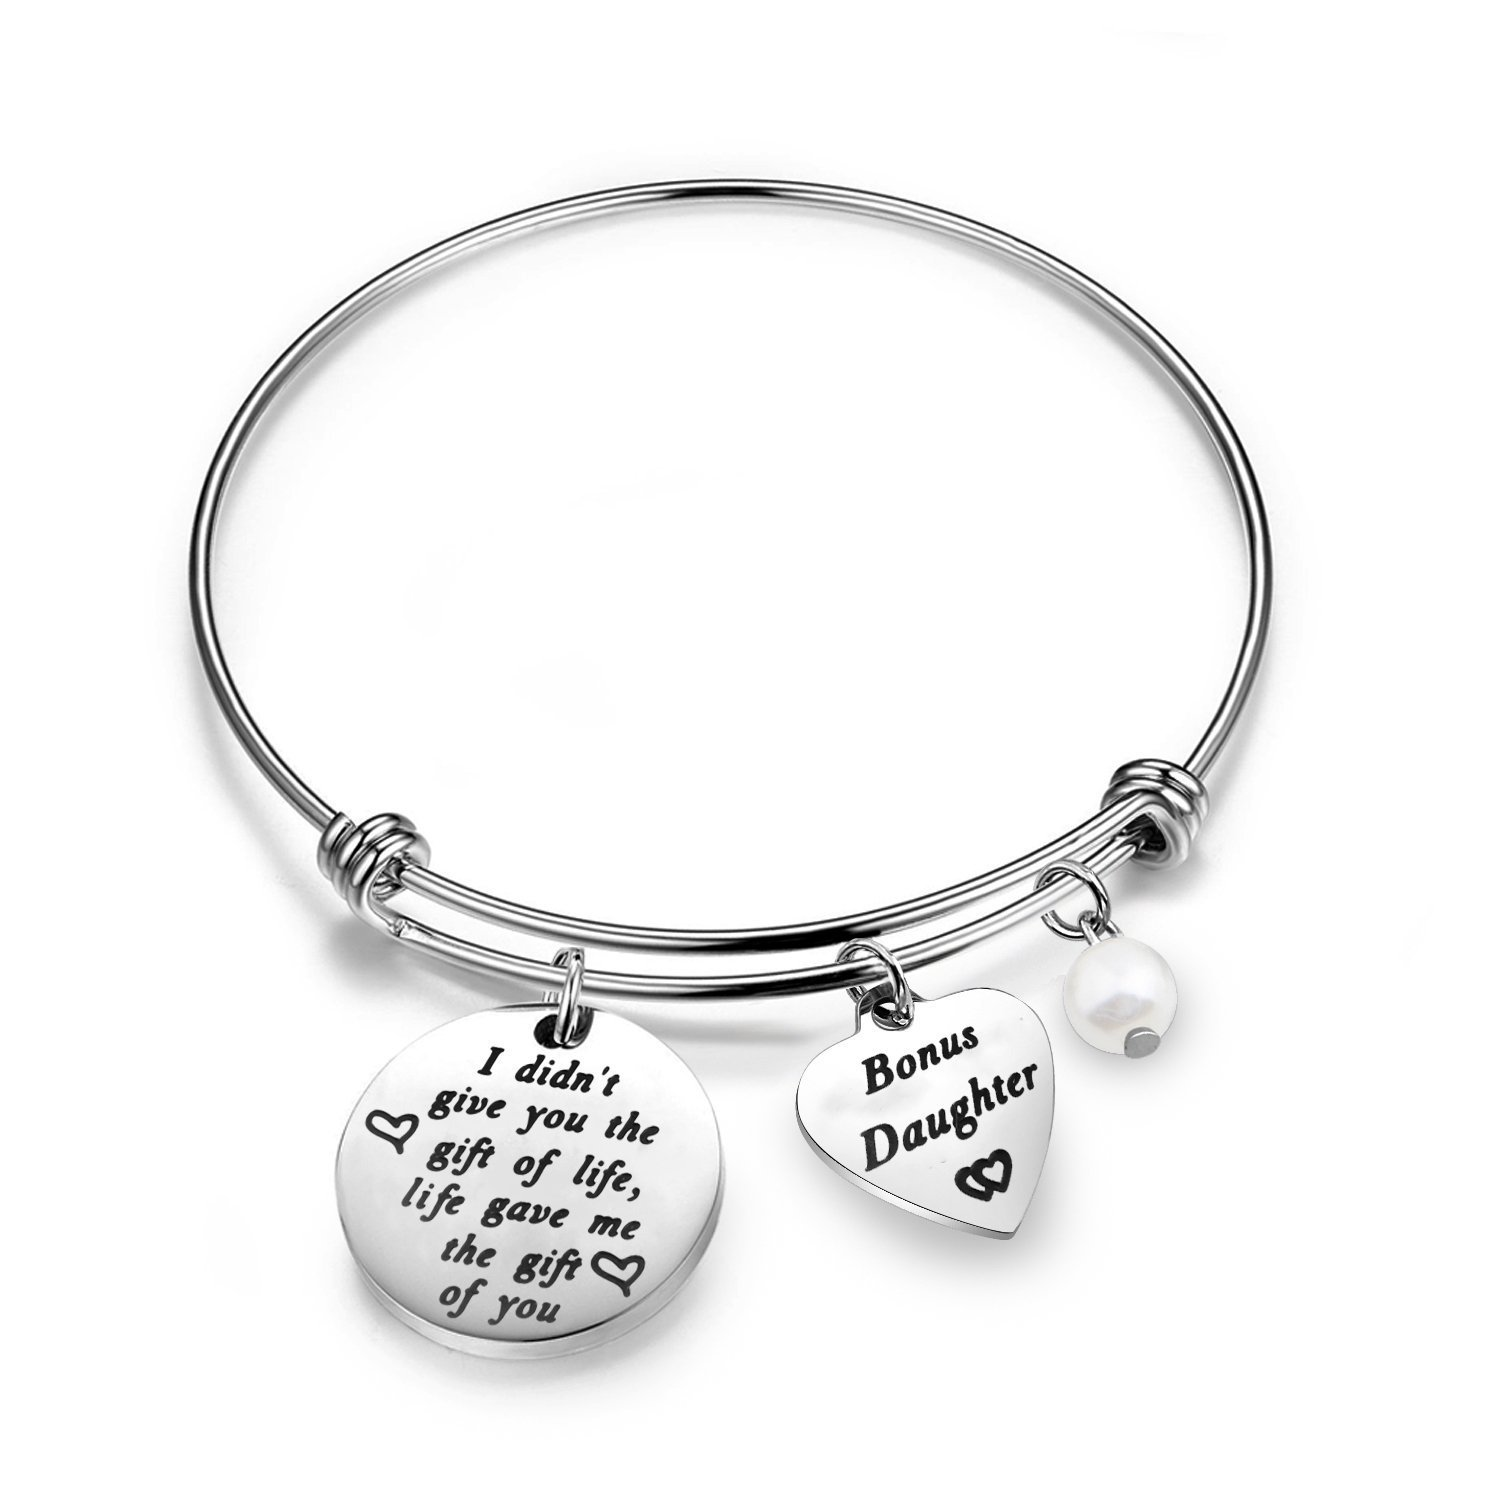 Stepdaughter Gifts Daughter in Law Bracelet I Didn't Give You The Gift of Life Life Gave Me The Gift of You Step Daughter Gifts from Stepmom Zuo Bao